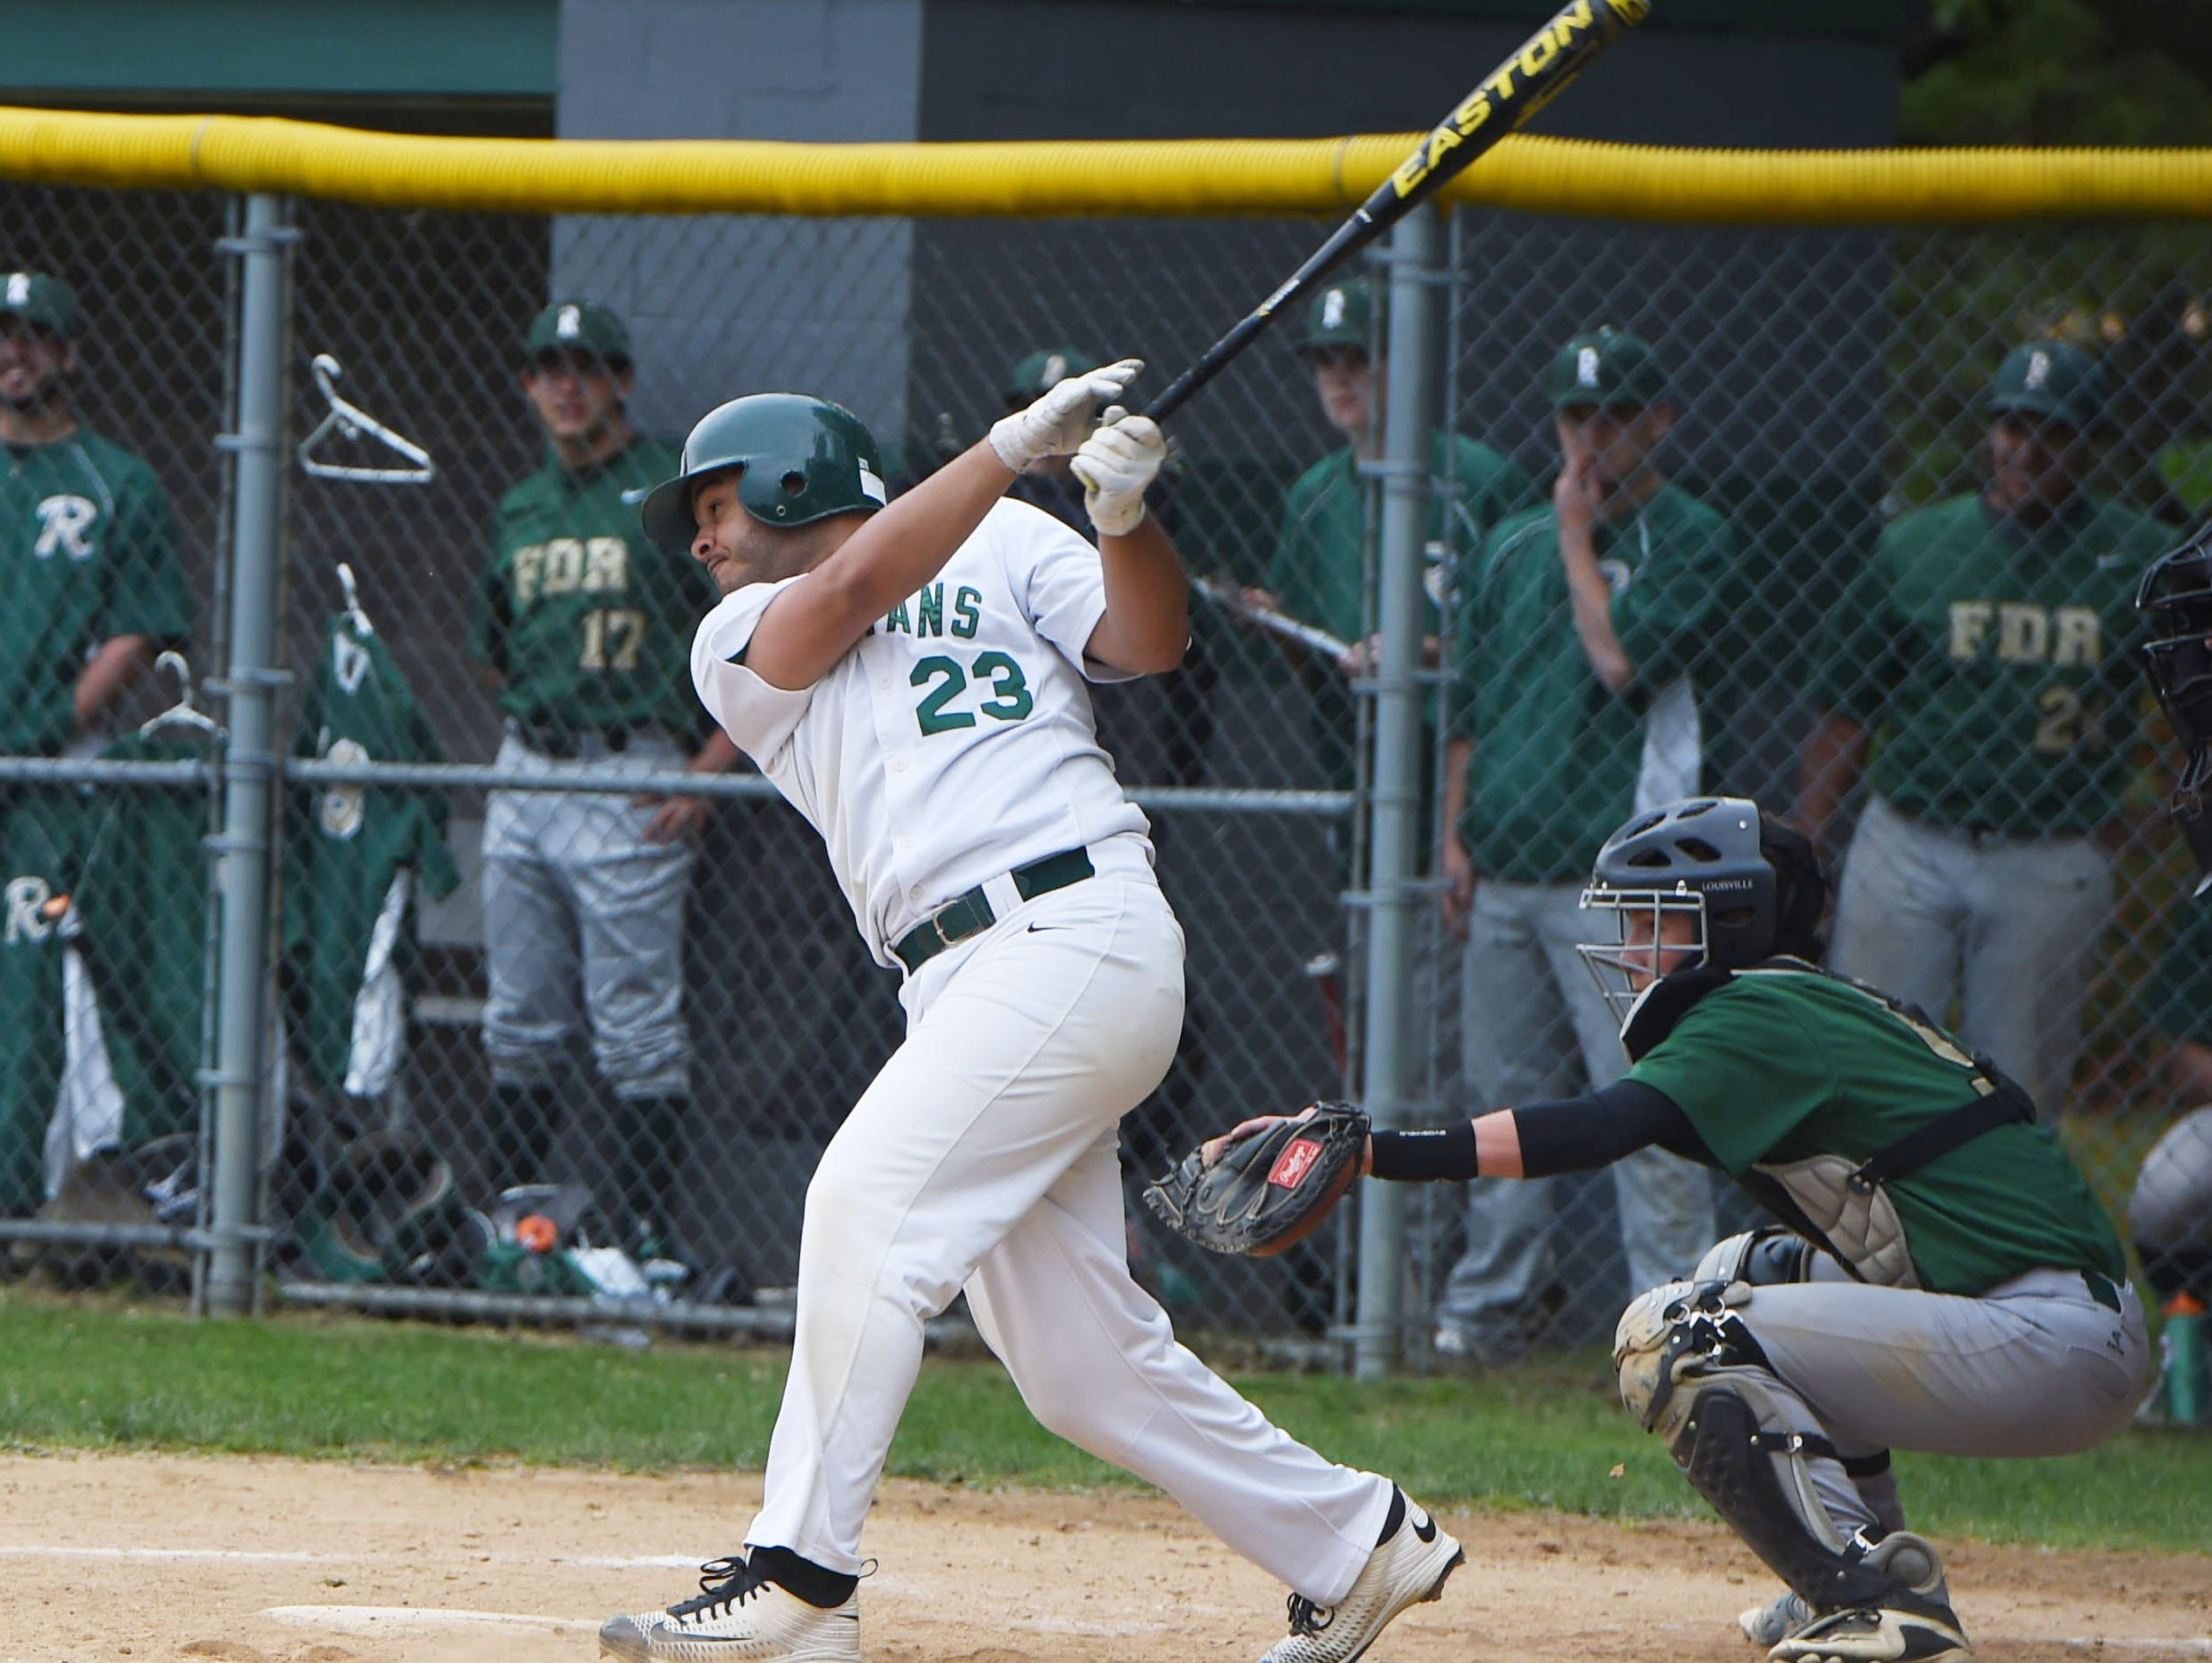 Spackenkill's Joe Oppedisano connects with the ball during Thursday's game against Roosevelt.